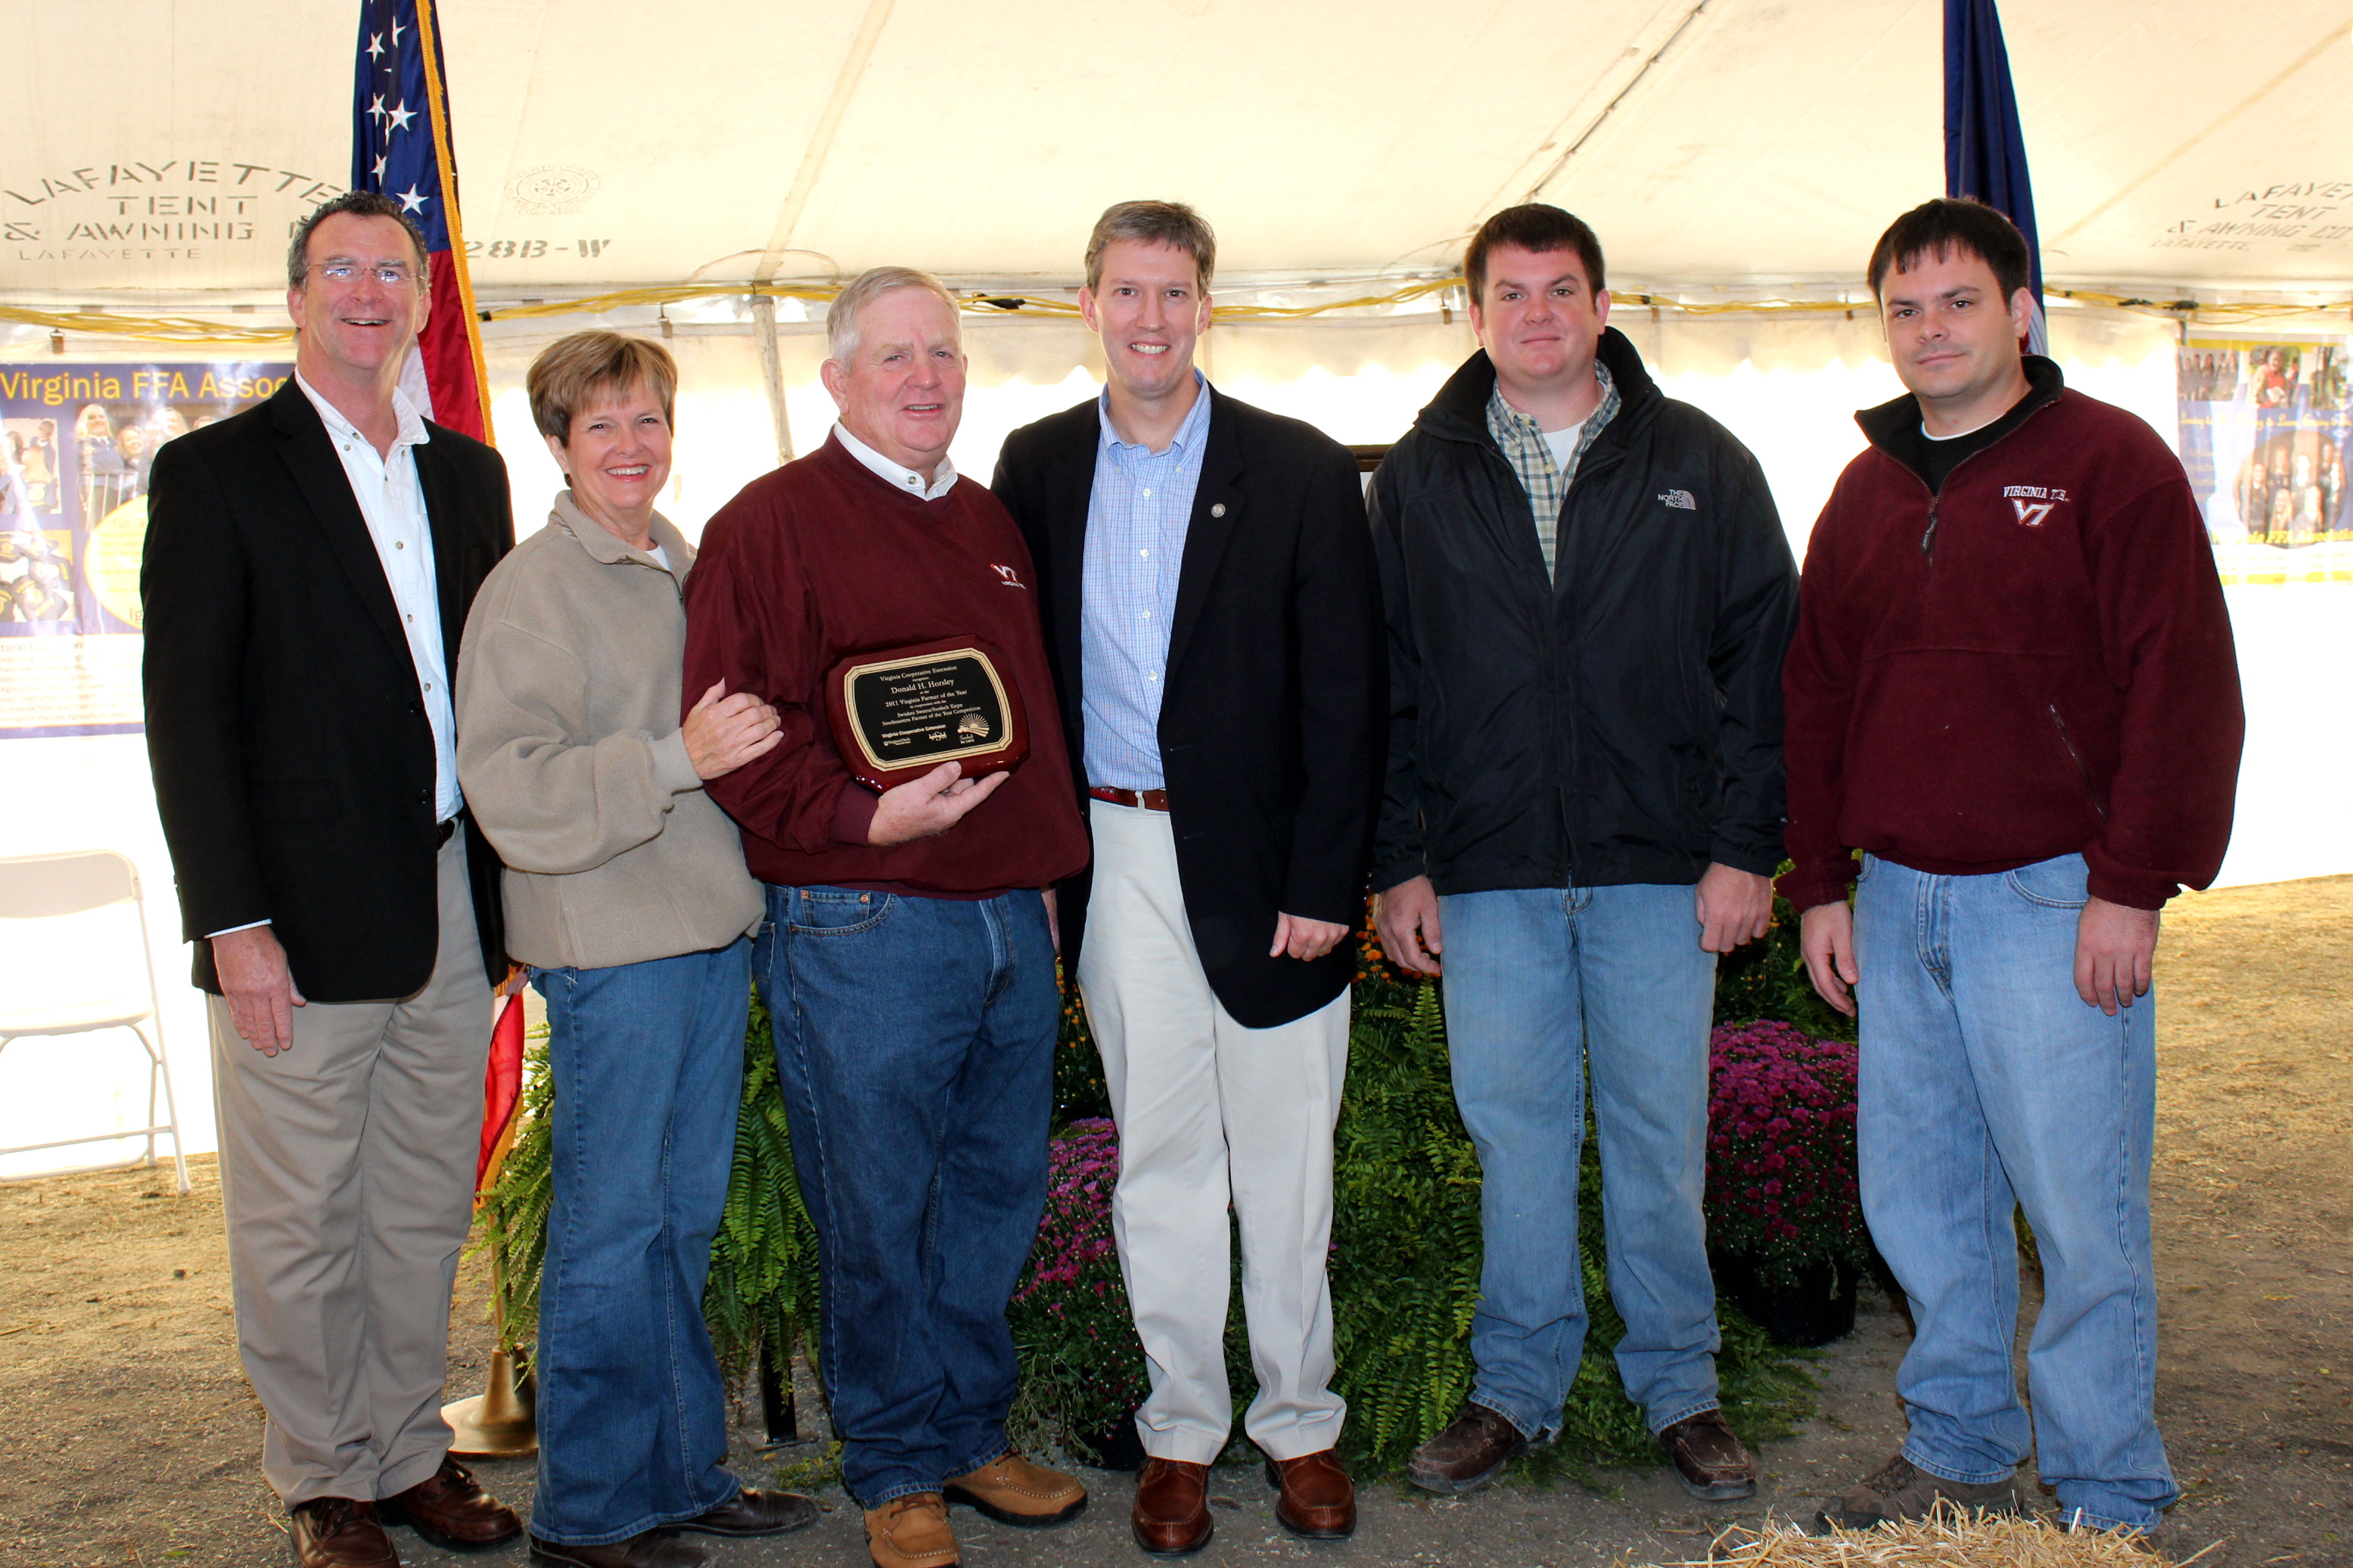 Farmer of the Year presetnation at the State Fair of Virginia